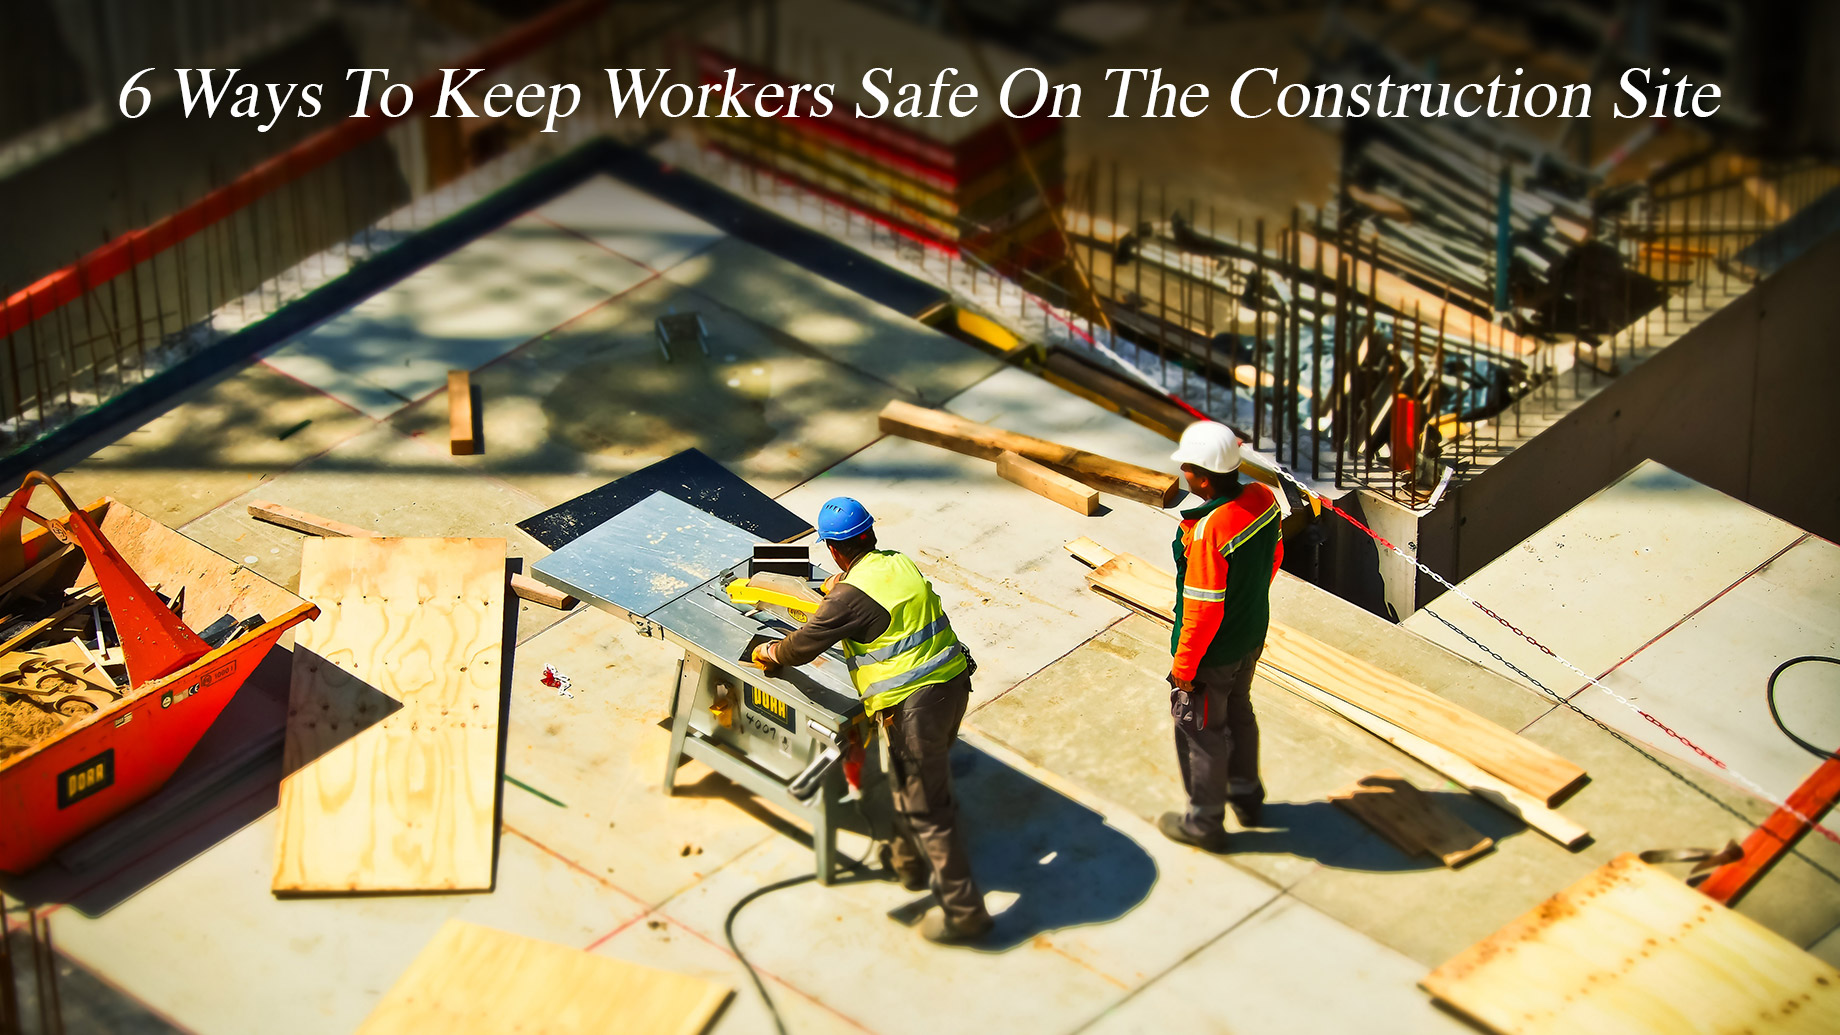 6 Ways To Keep Workers Safe On The Construction Site